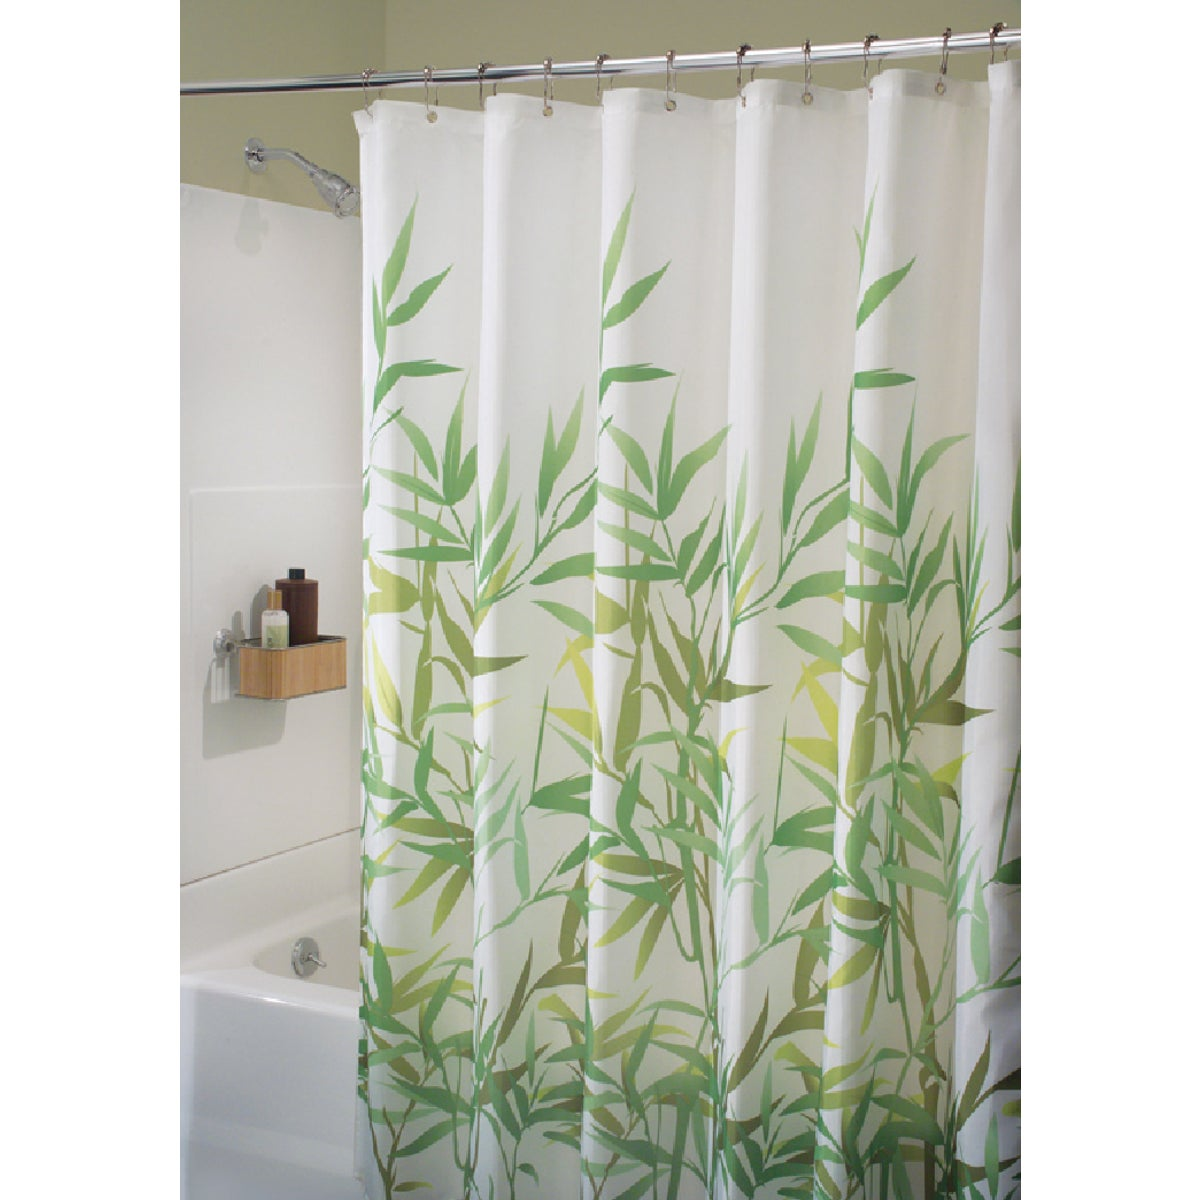 ANZU SHOWER CURTAIN - 36524 by Interdesign Inc